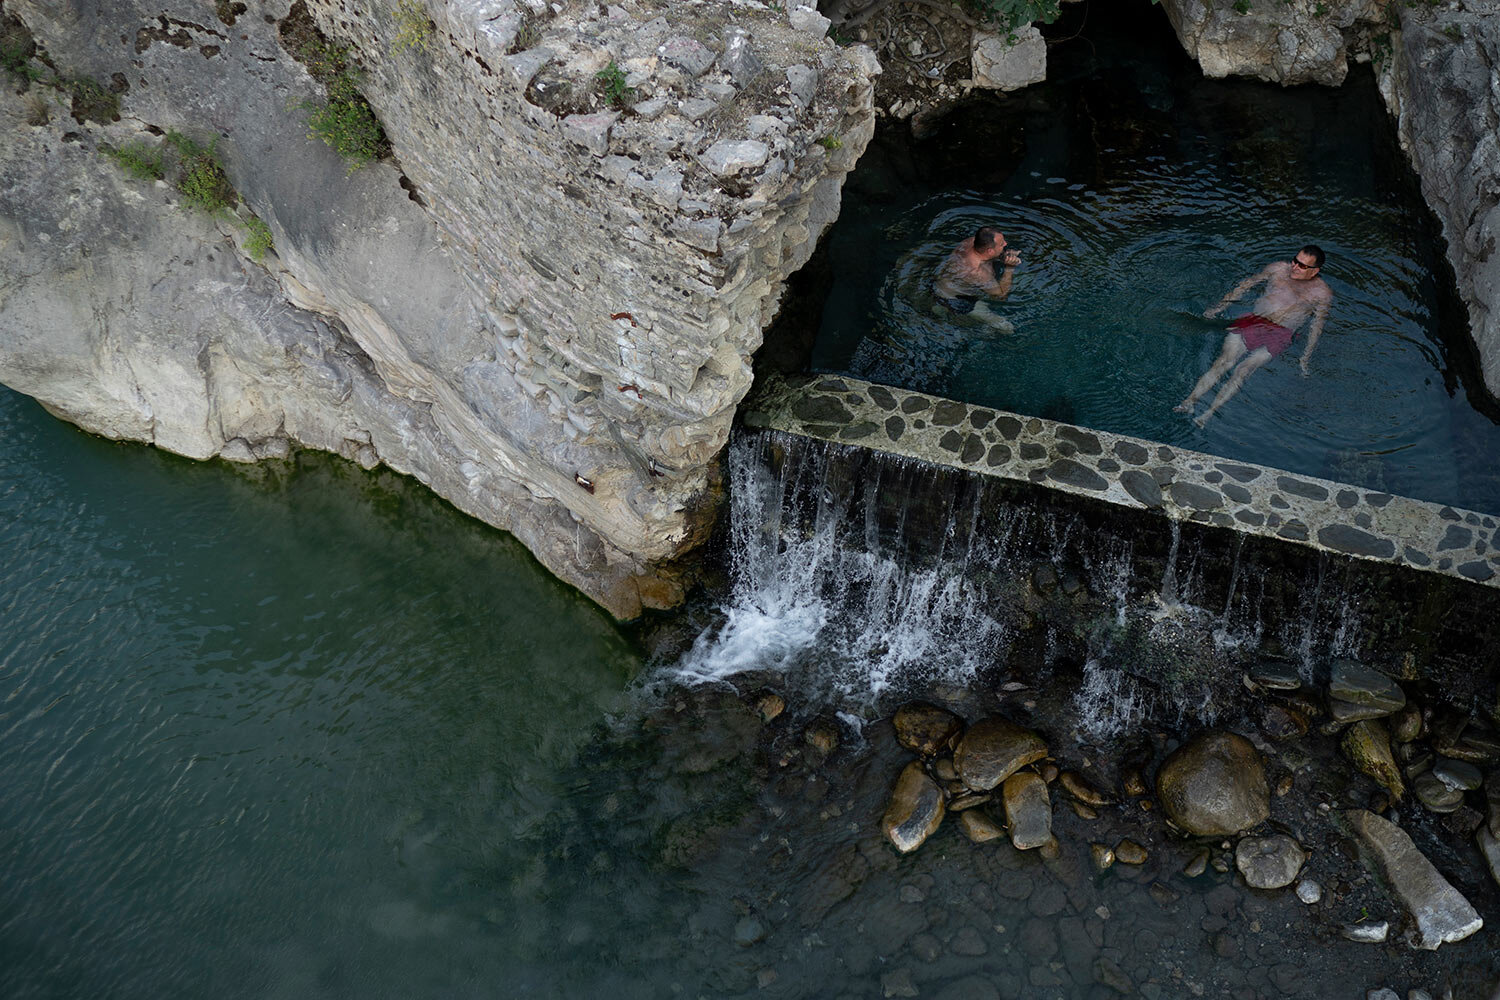 People bathe in a thermal spring on the banks of the Langarica River, a tributary to the Vjosa near Permet, Albania. (AP Photo/Felipe Dana)